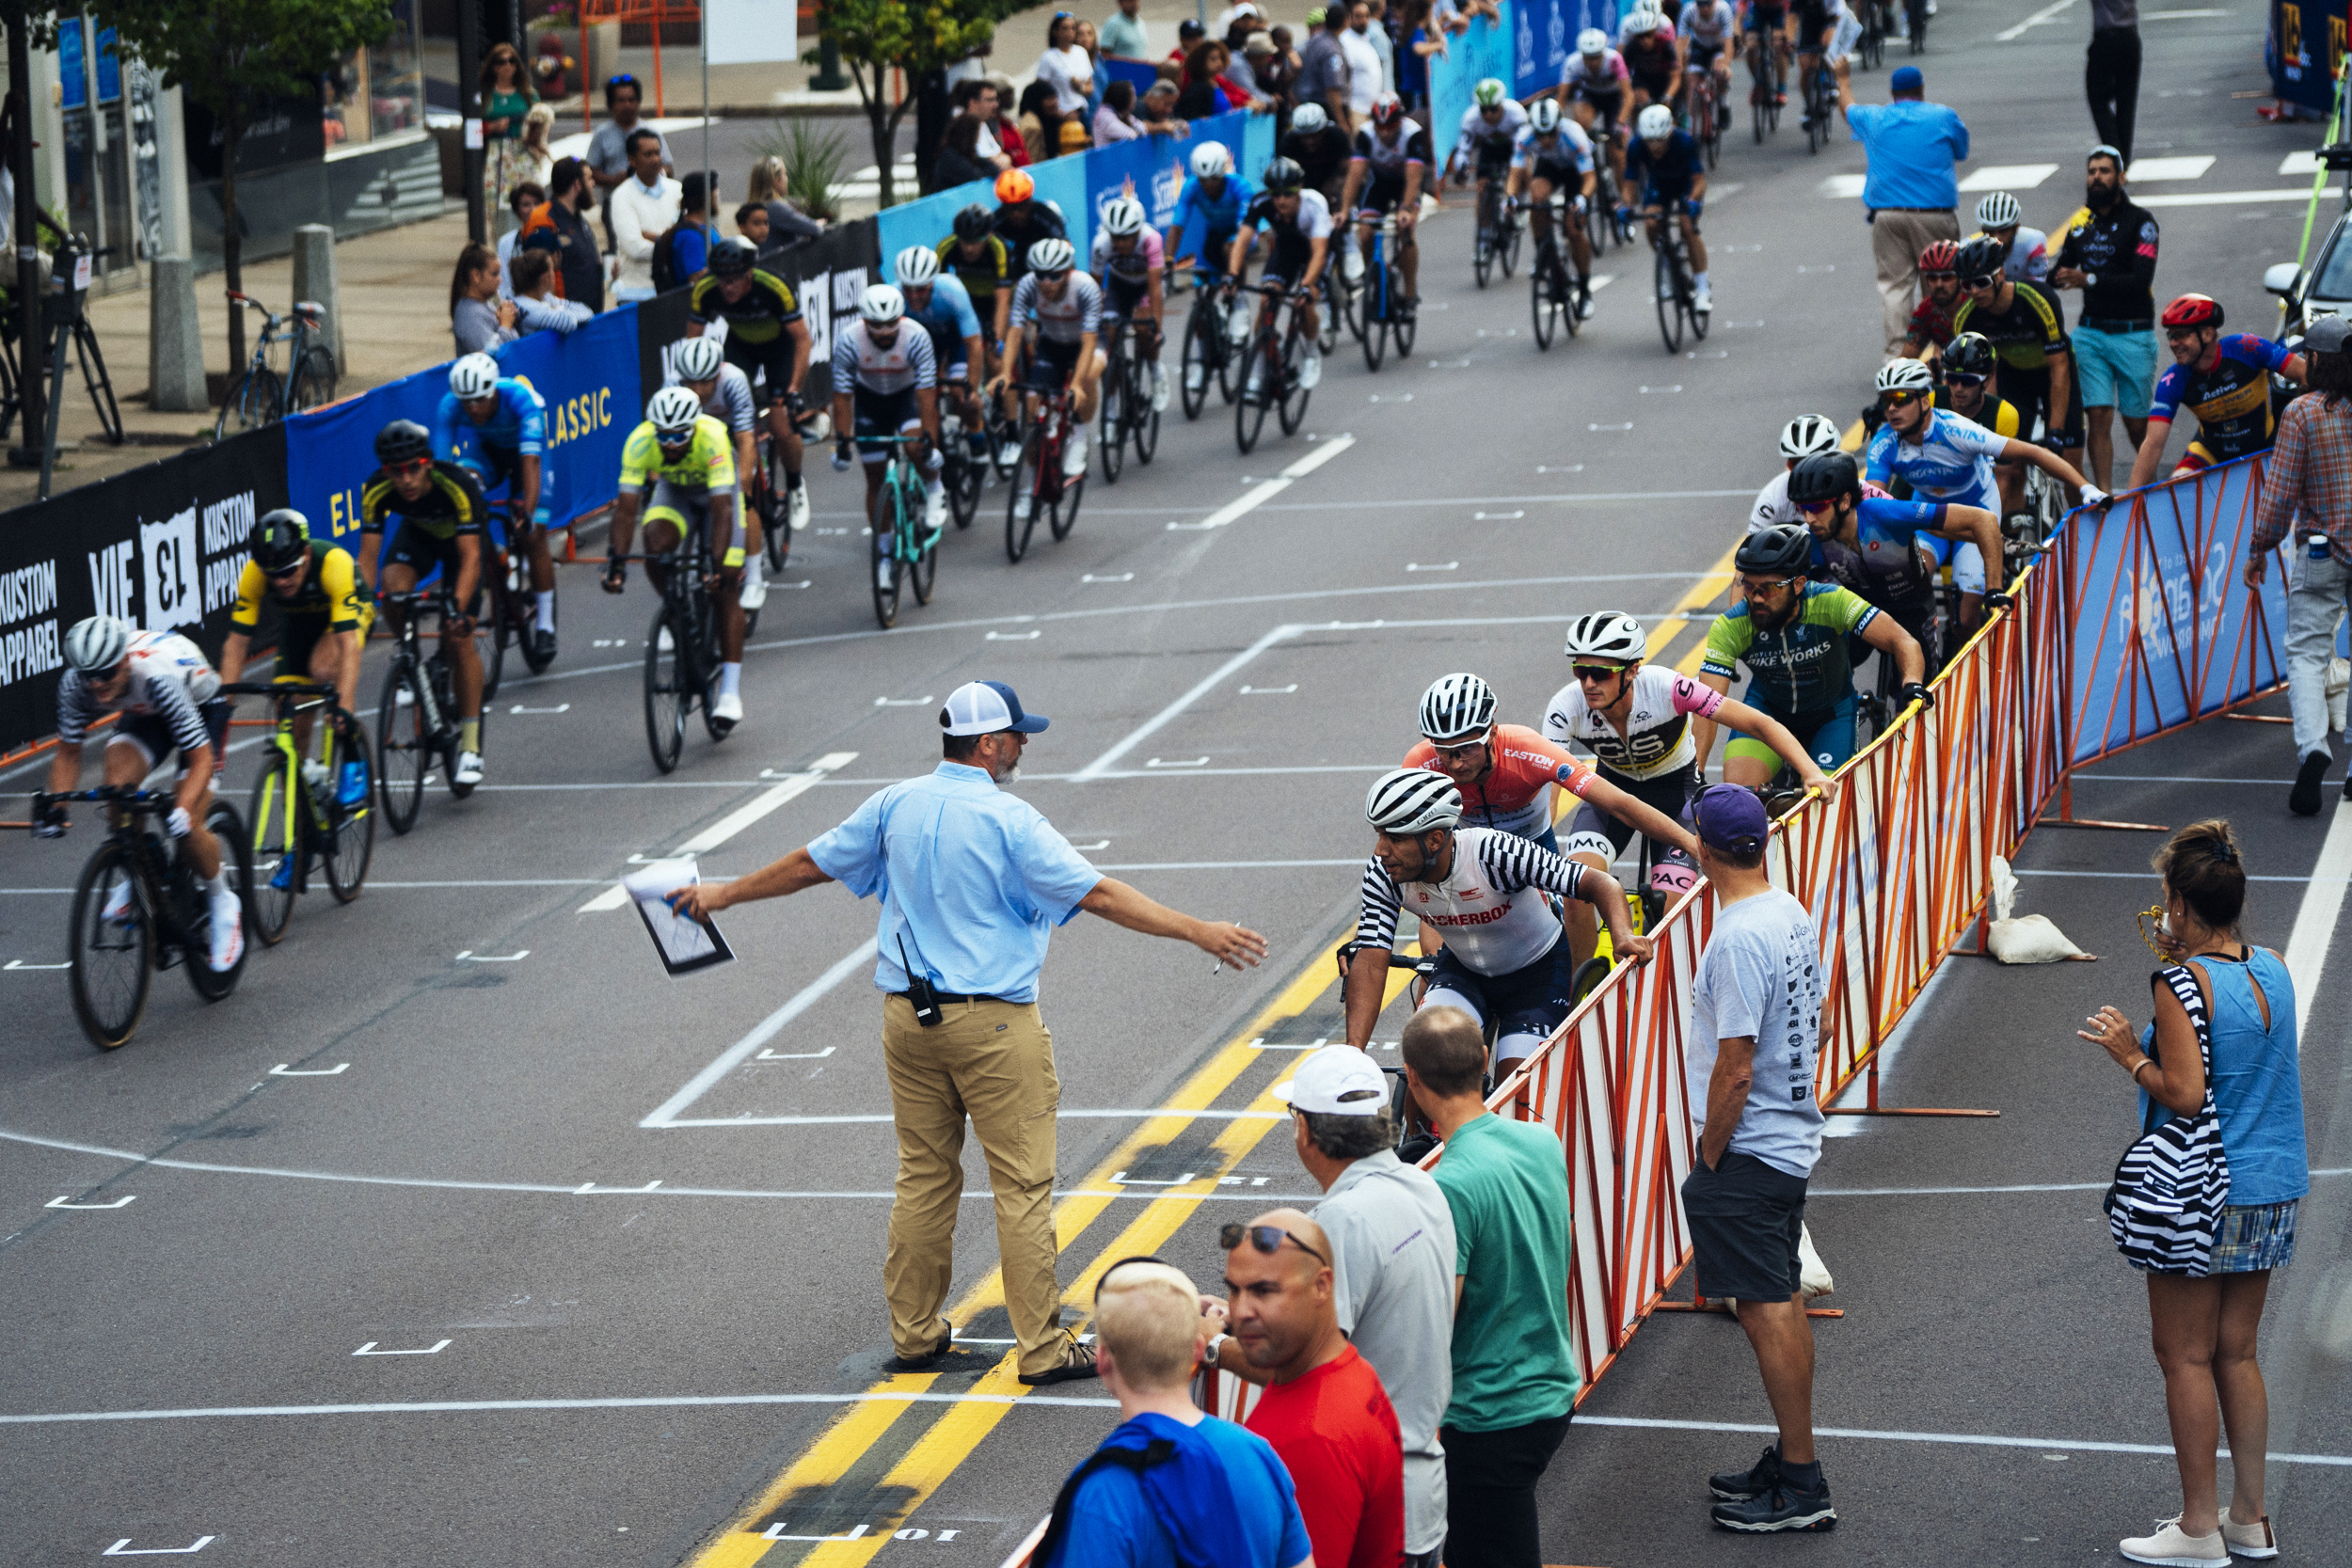 A late race pileup in the Pro Men's field made for an exciting final few laps in the peloton